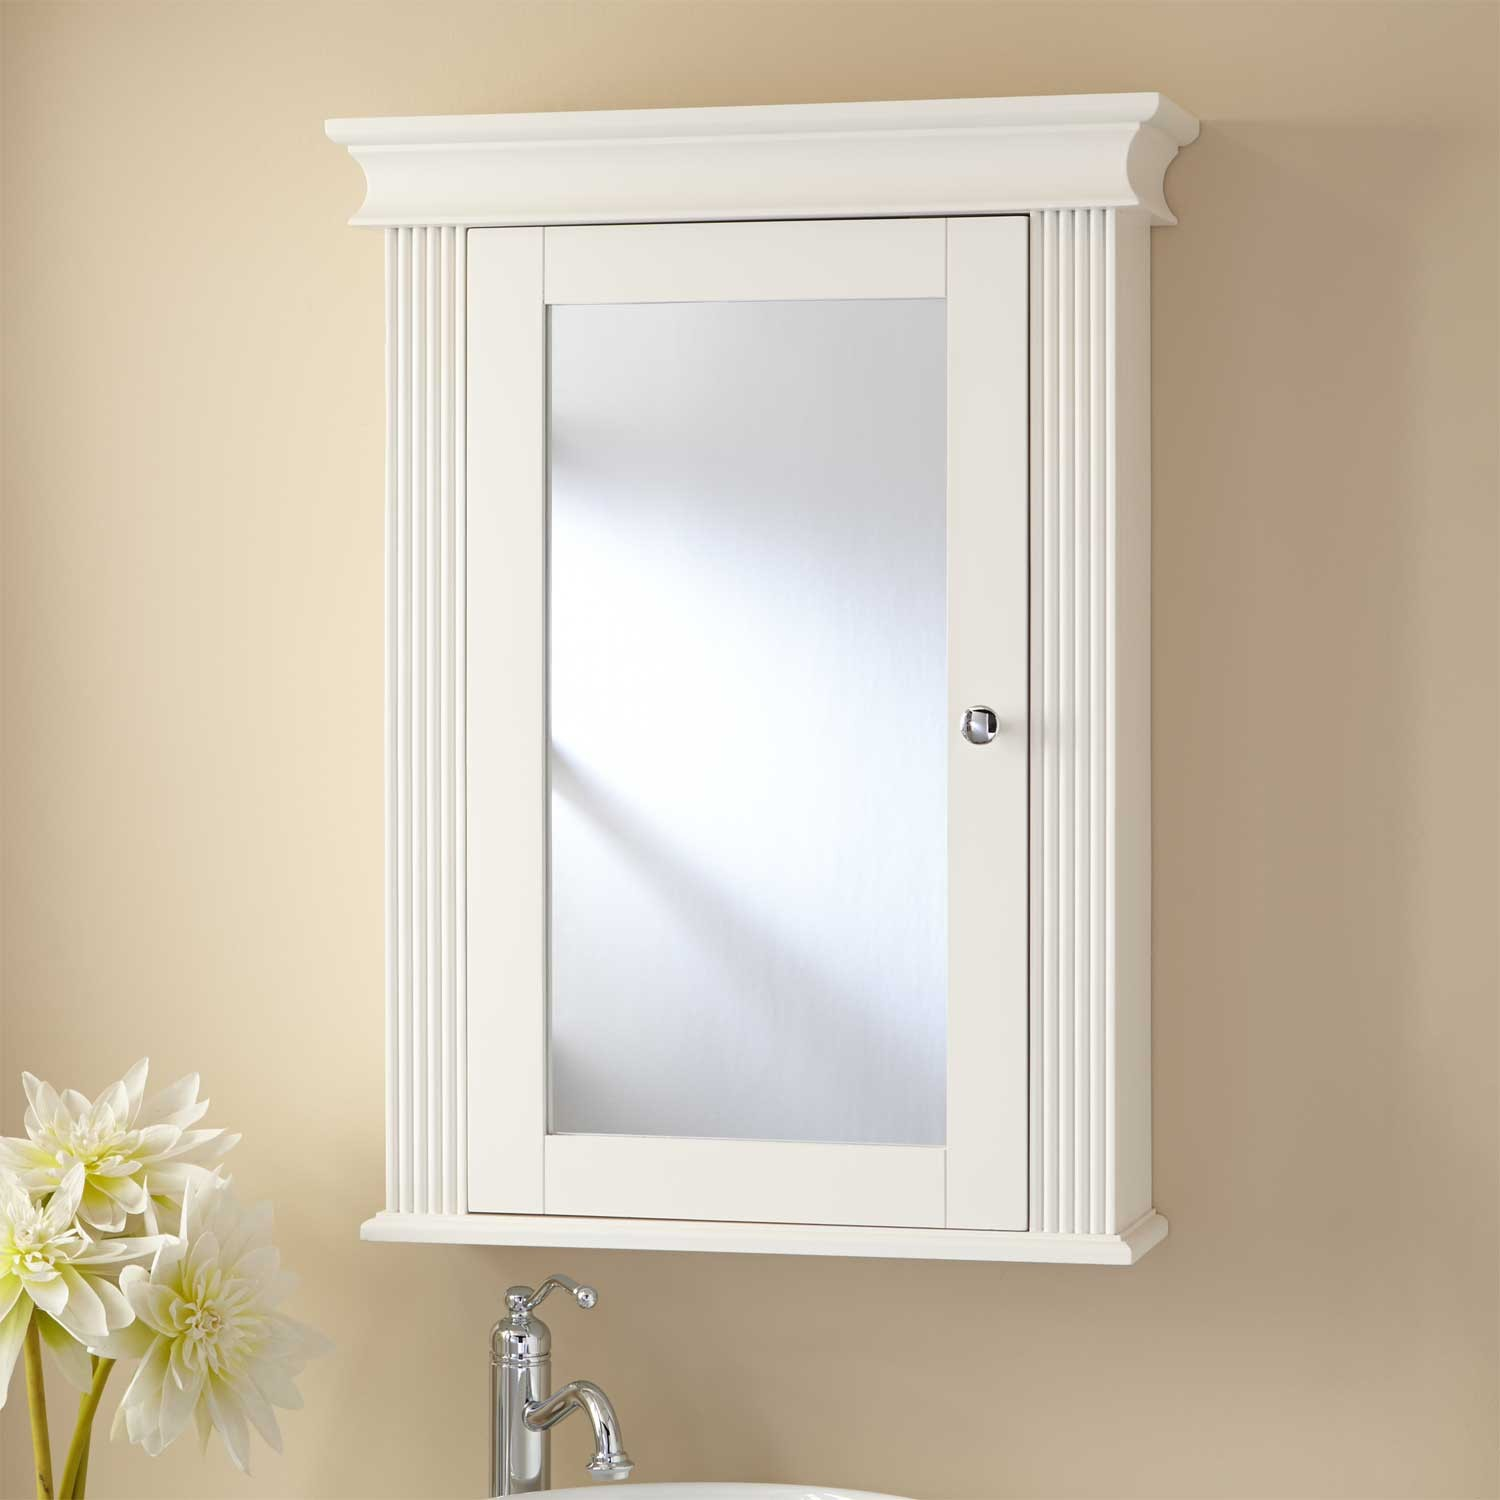 white lowes Medicine Cabinets with mirror on wheat wall plus sink and silver faucet